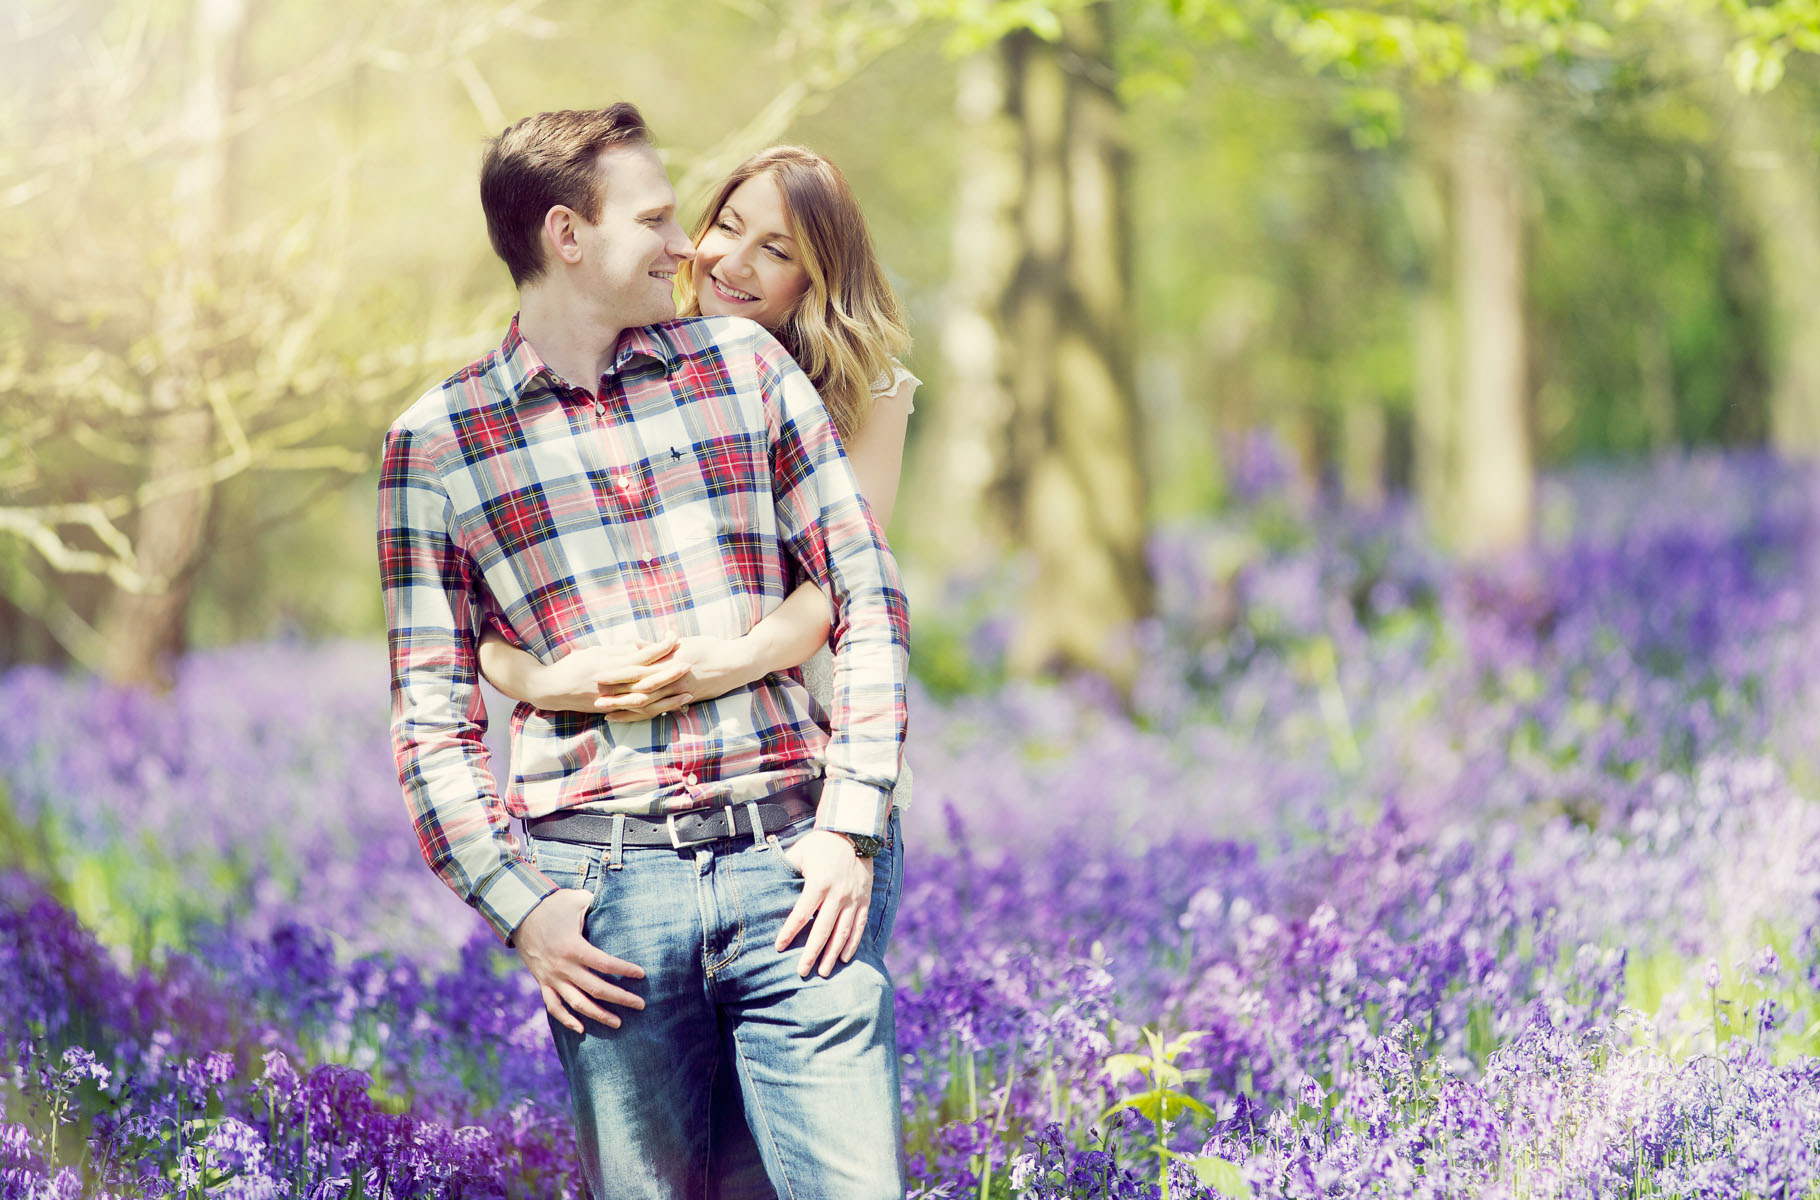 Engagement-Love-Photographer-Winchester-Hampshire-28